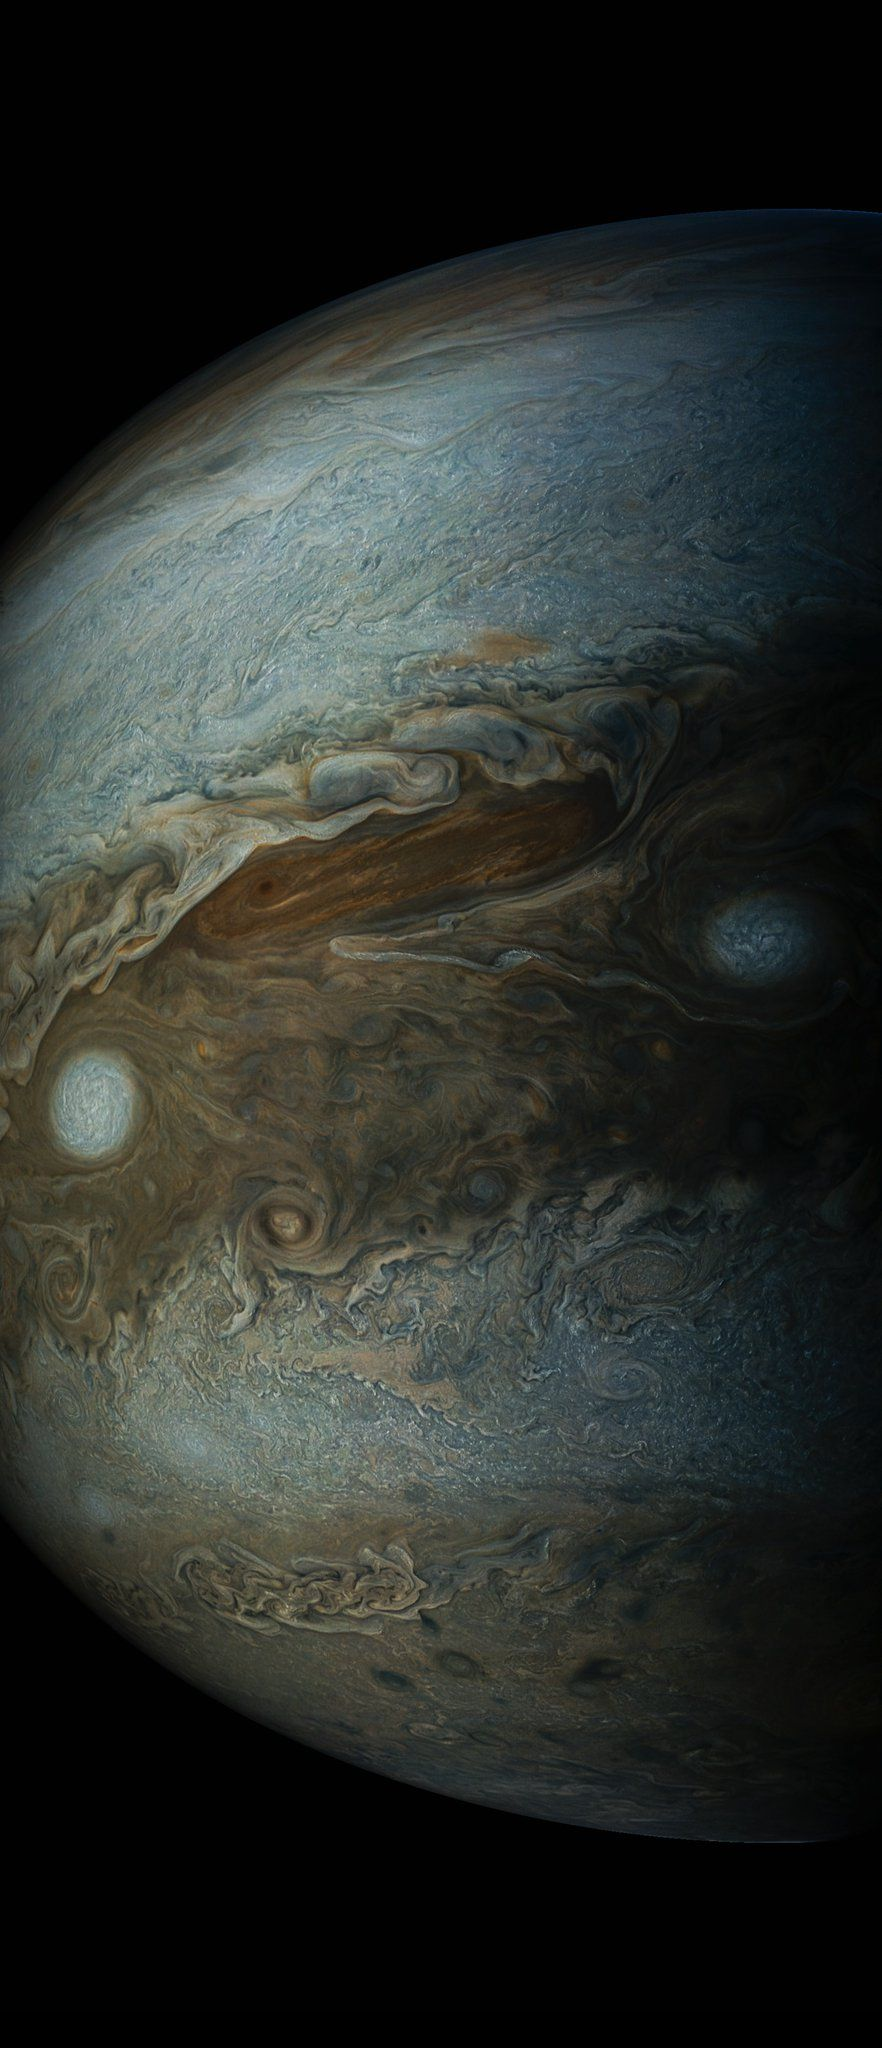 A new picture of Jupiter staring back at you.